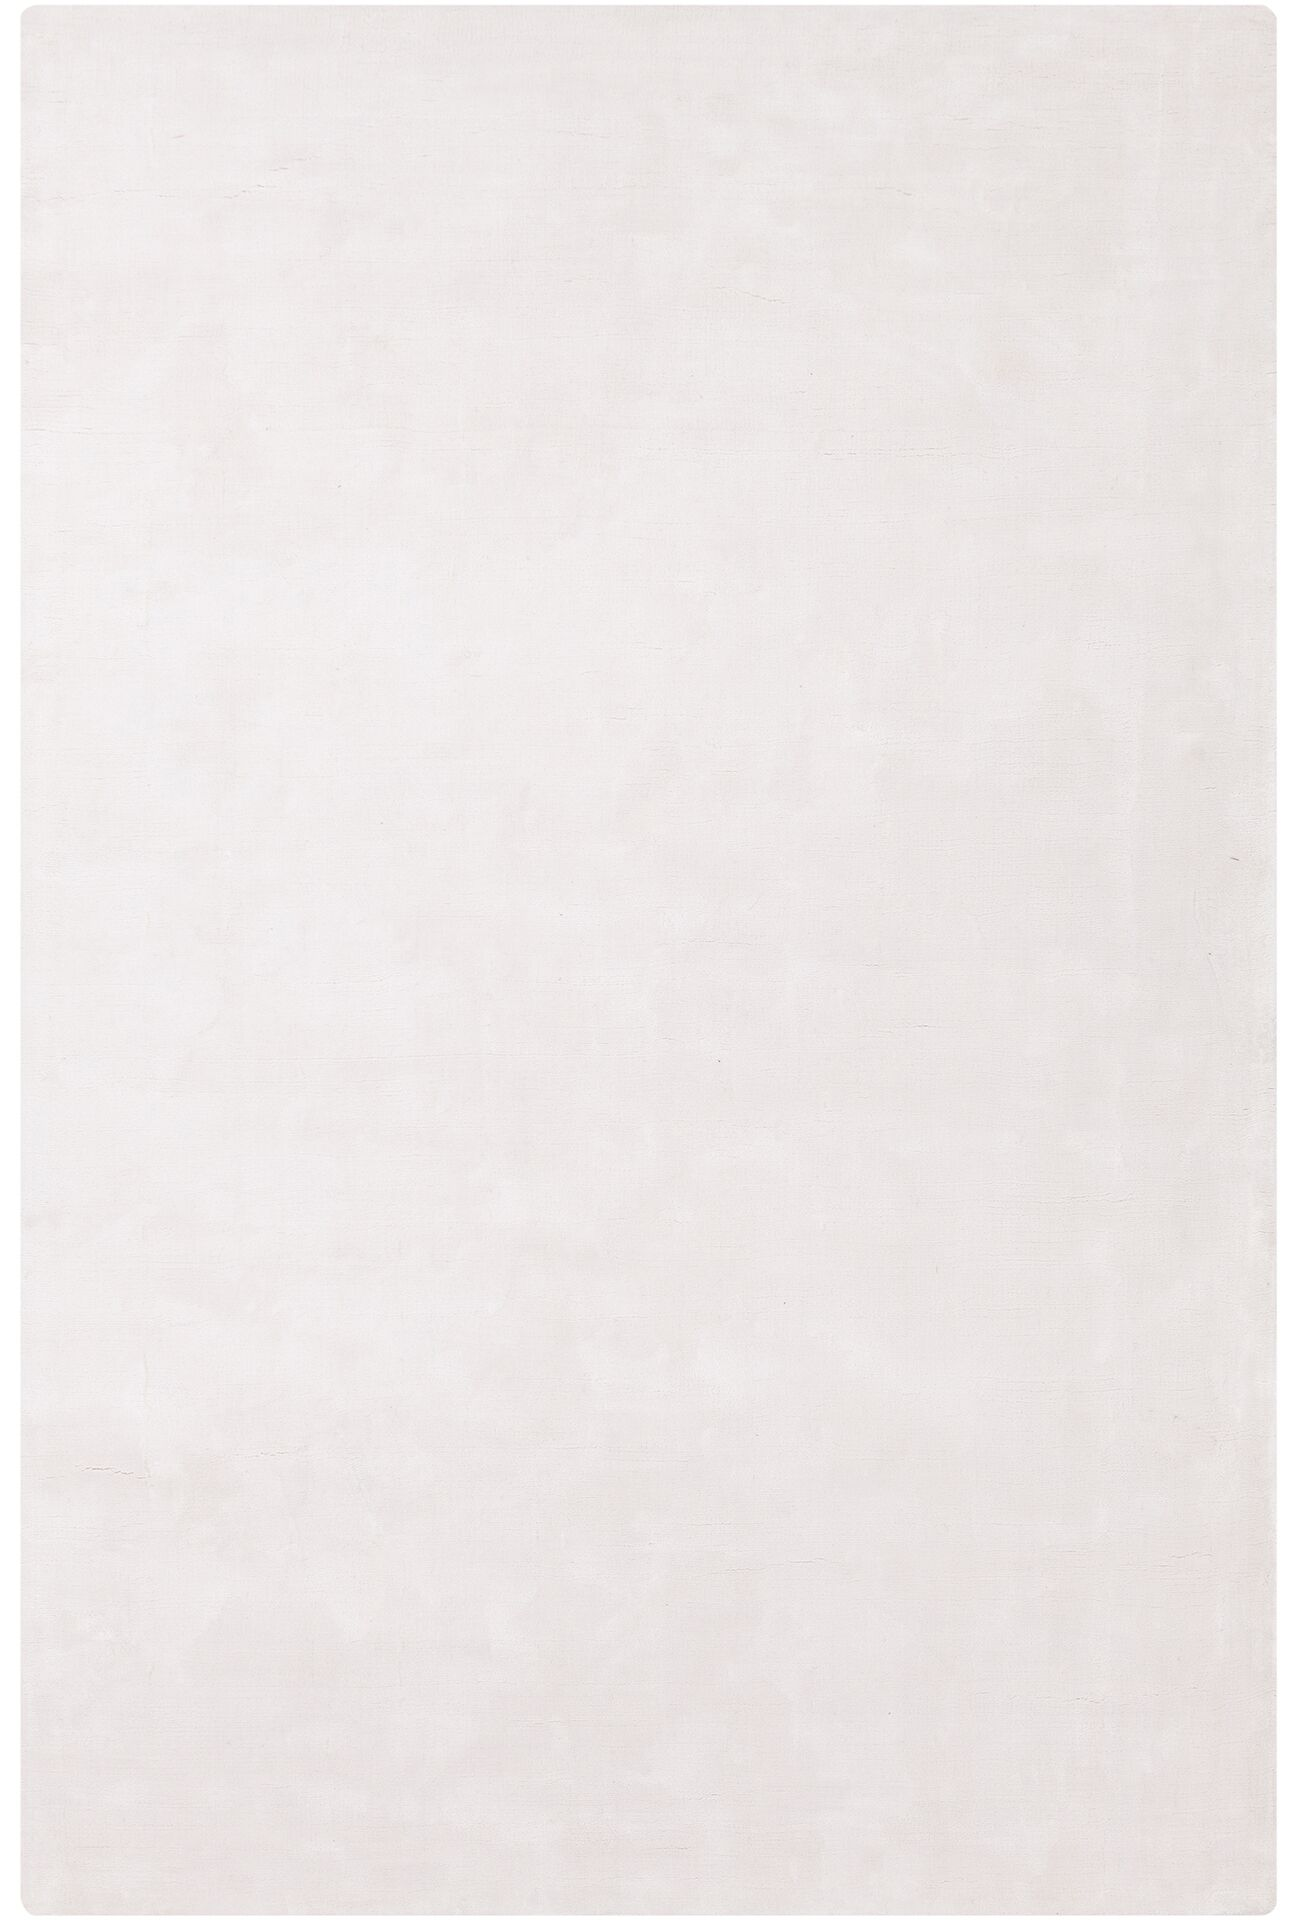 Mabel Hand Woven Wool White Area Rug Rug Size: Rectangle 5' x 7'6